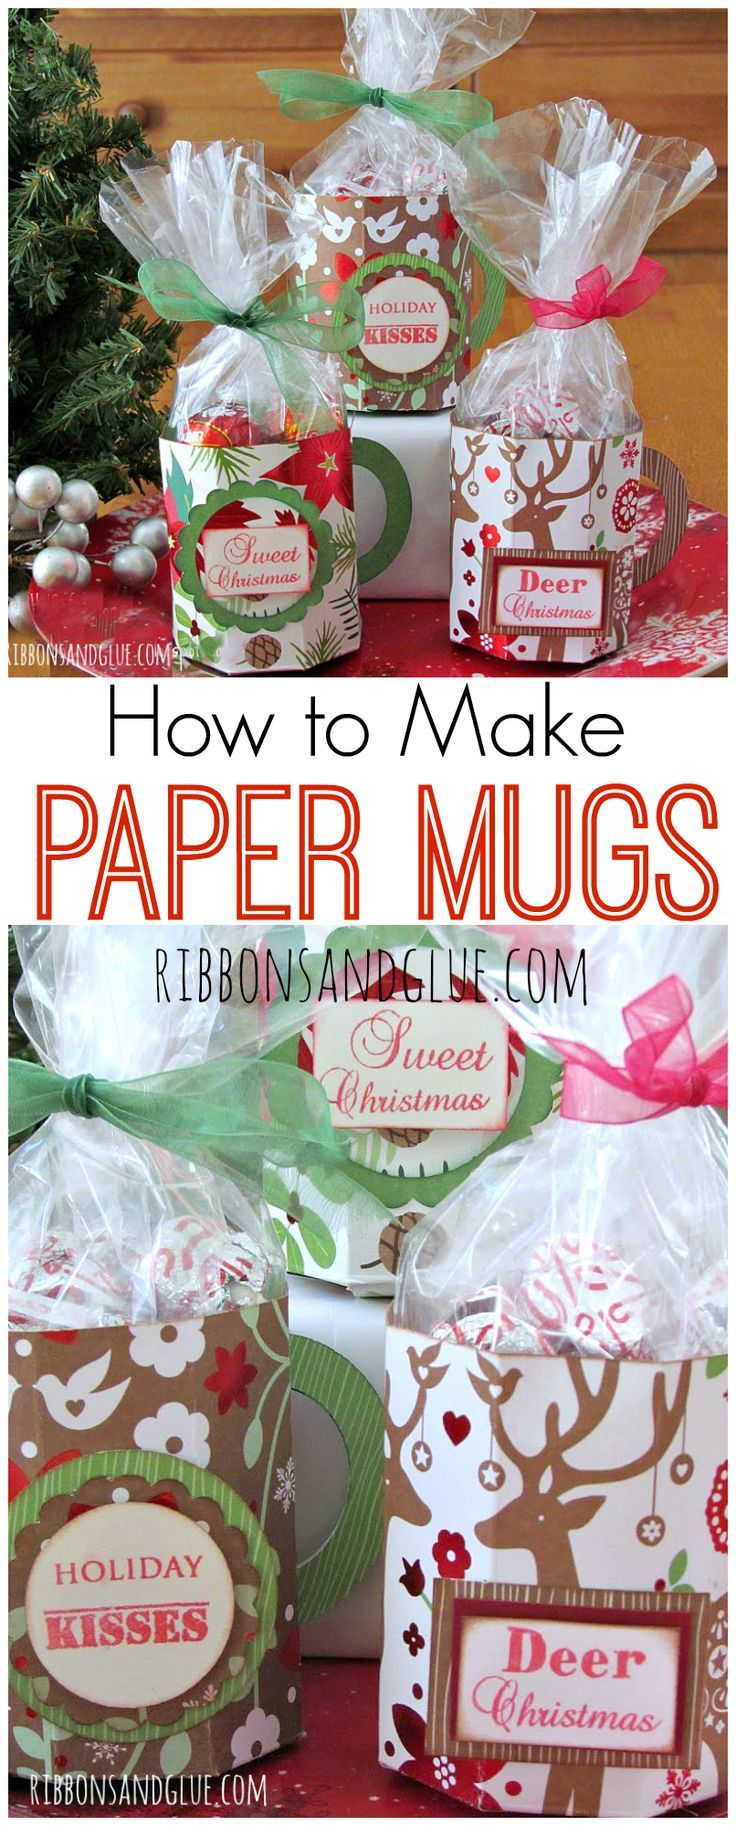 How to make Paper Mugs with a score board and double sided paper.